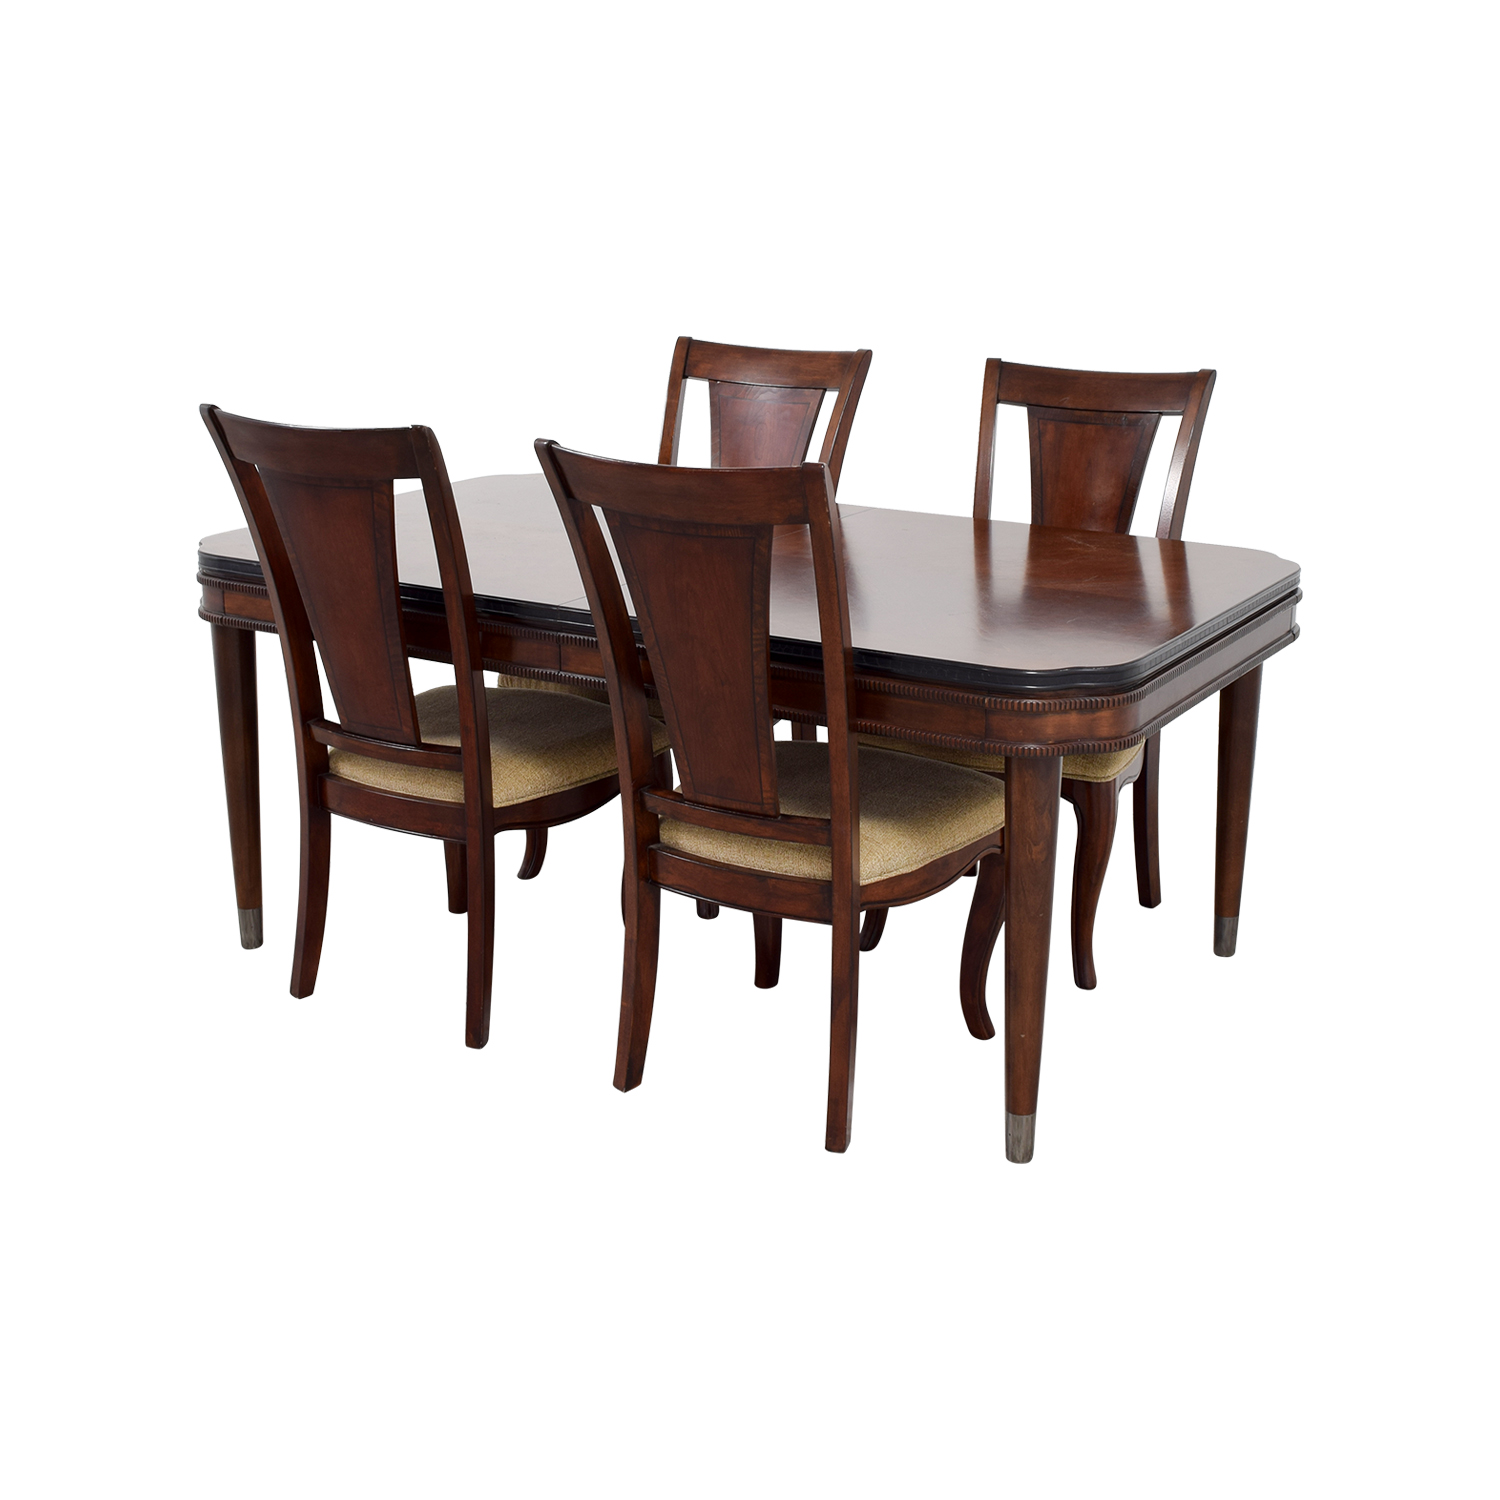 Raymour And Flanigan Dining Room: Raymour & Flanigan Raymour & Flanigan Extendable